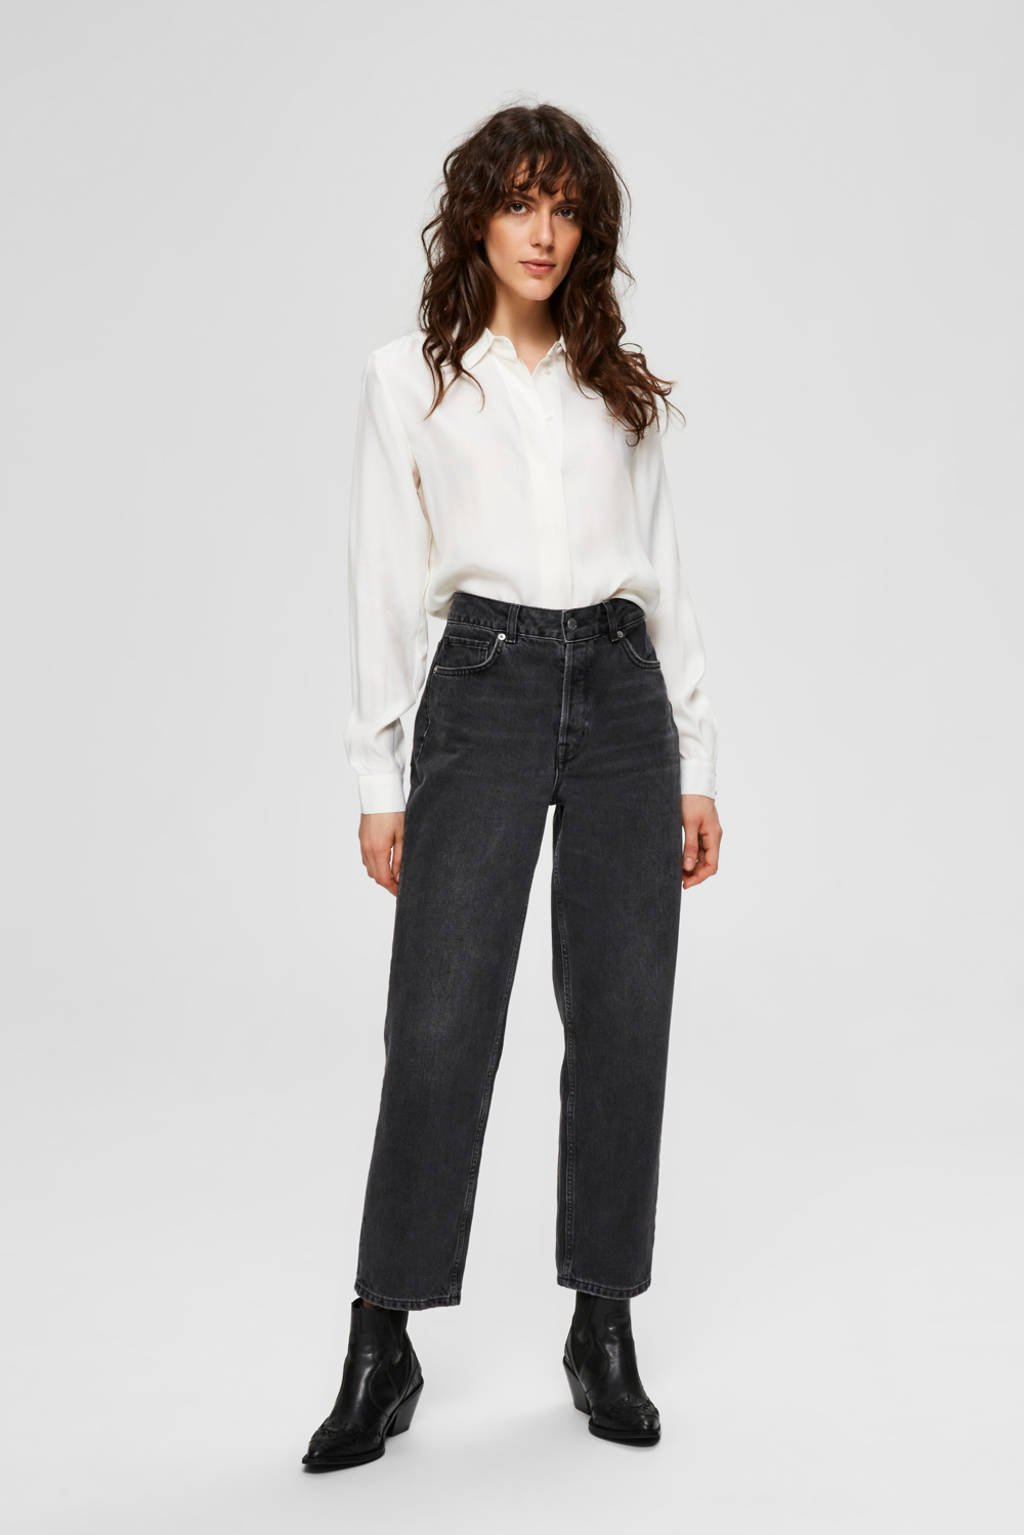 SELECTED FEMME blouse wit, Wit